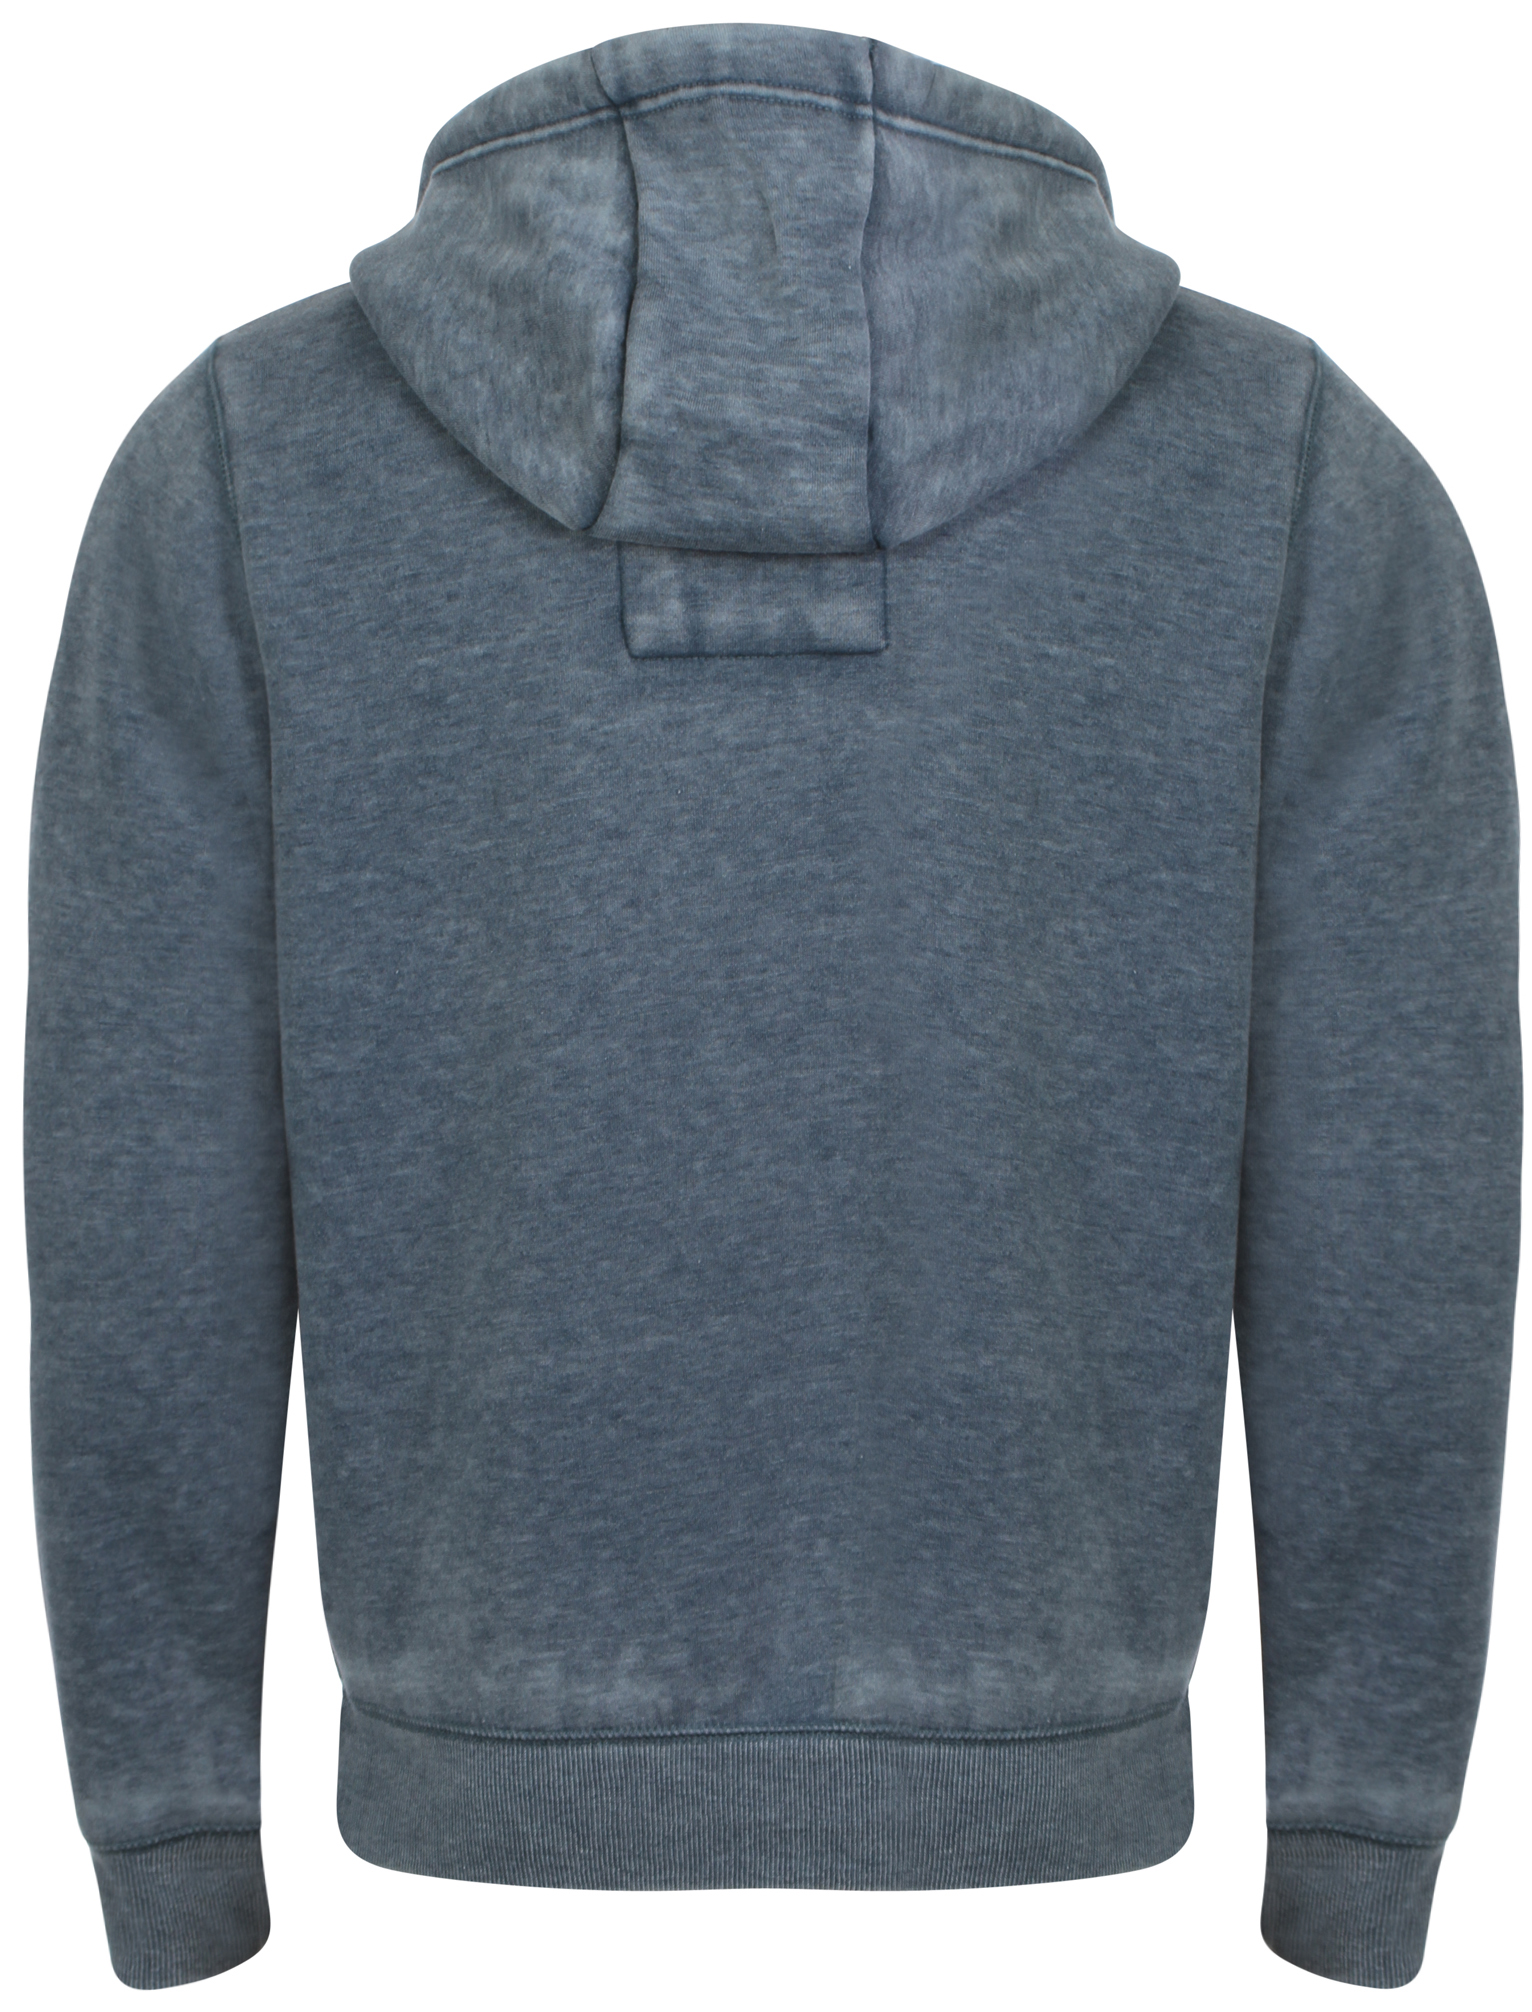 New Mens Tokyo Laundry Vermont Hoodie Pullover Printed Hooded Sweater Sizes S-XL